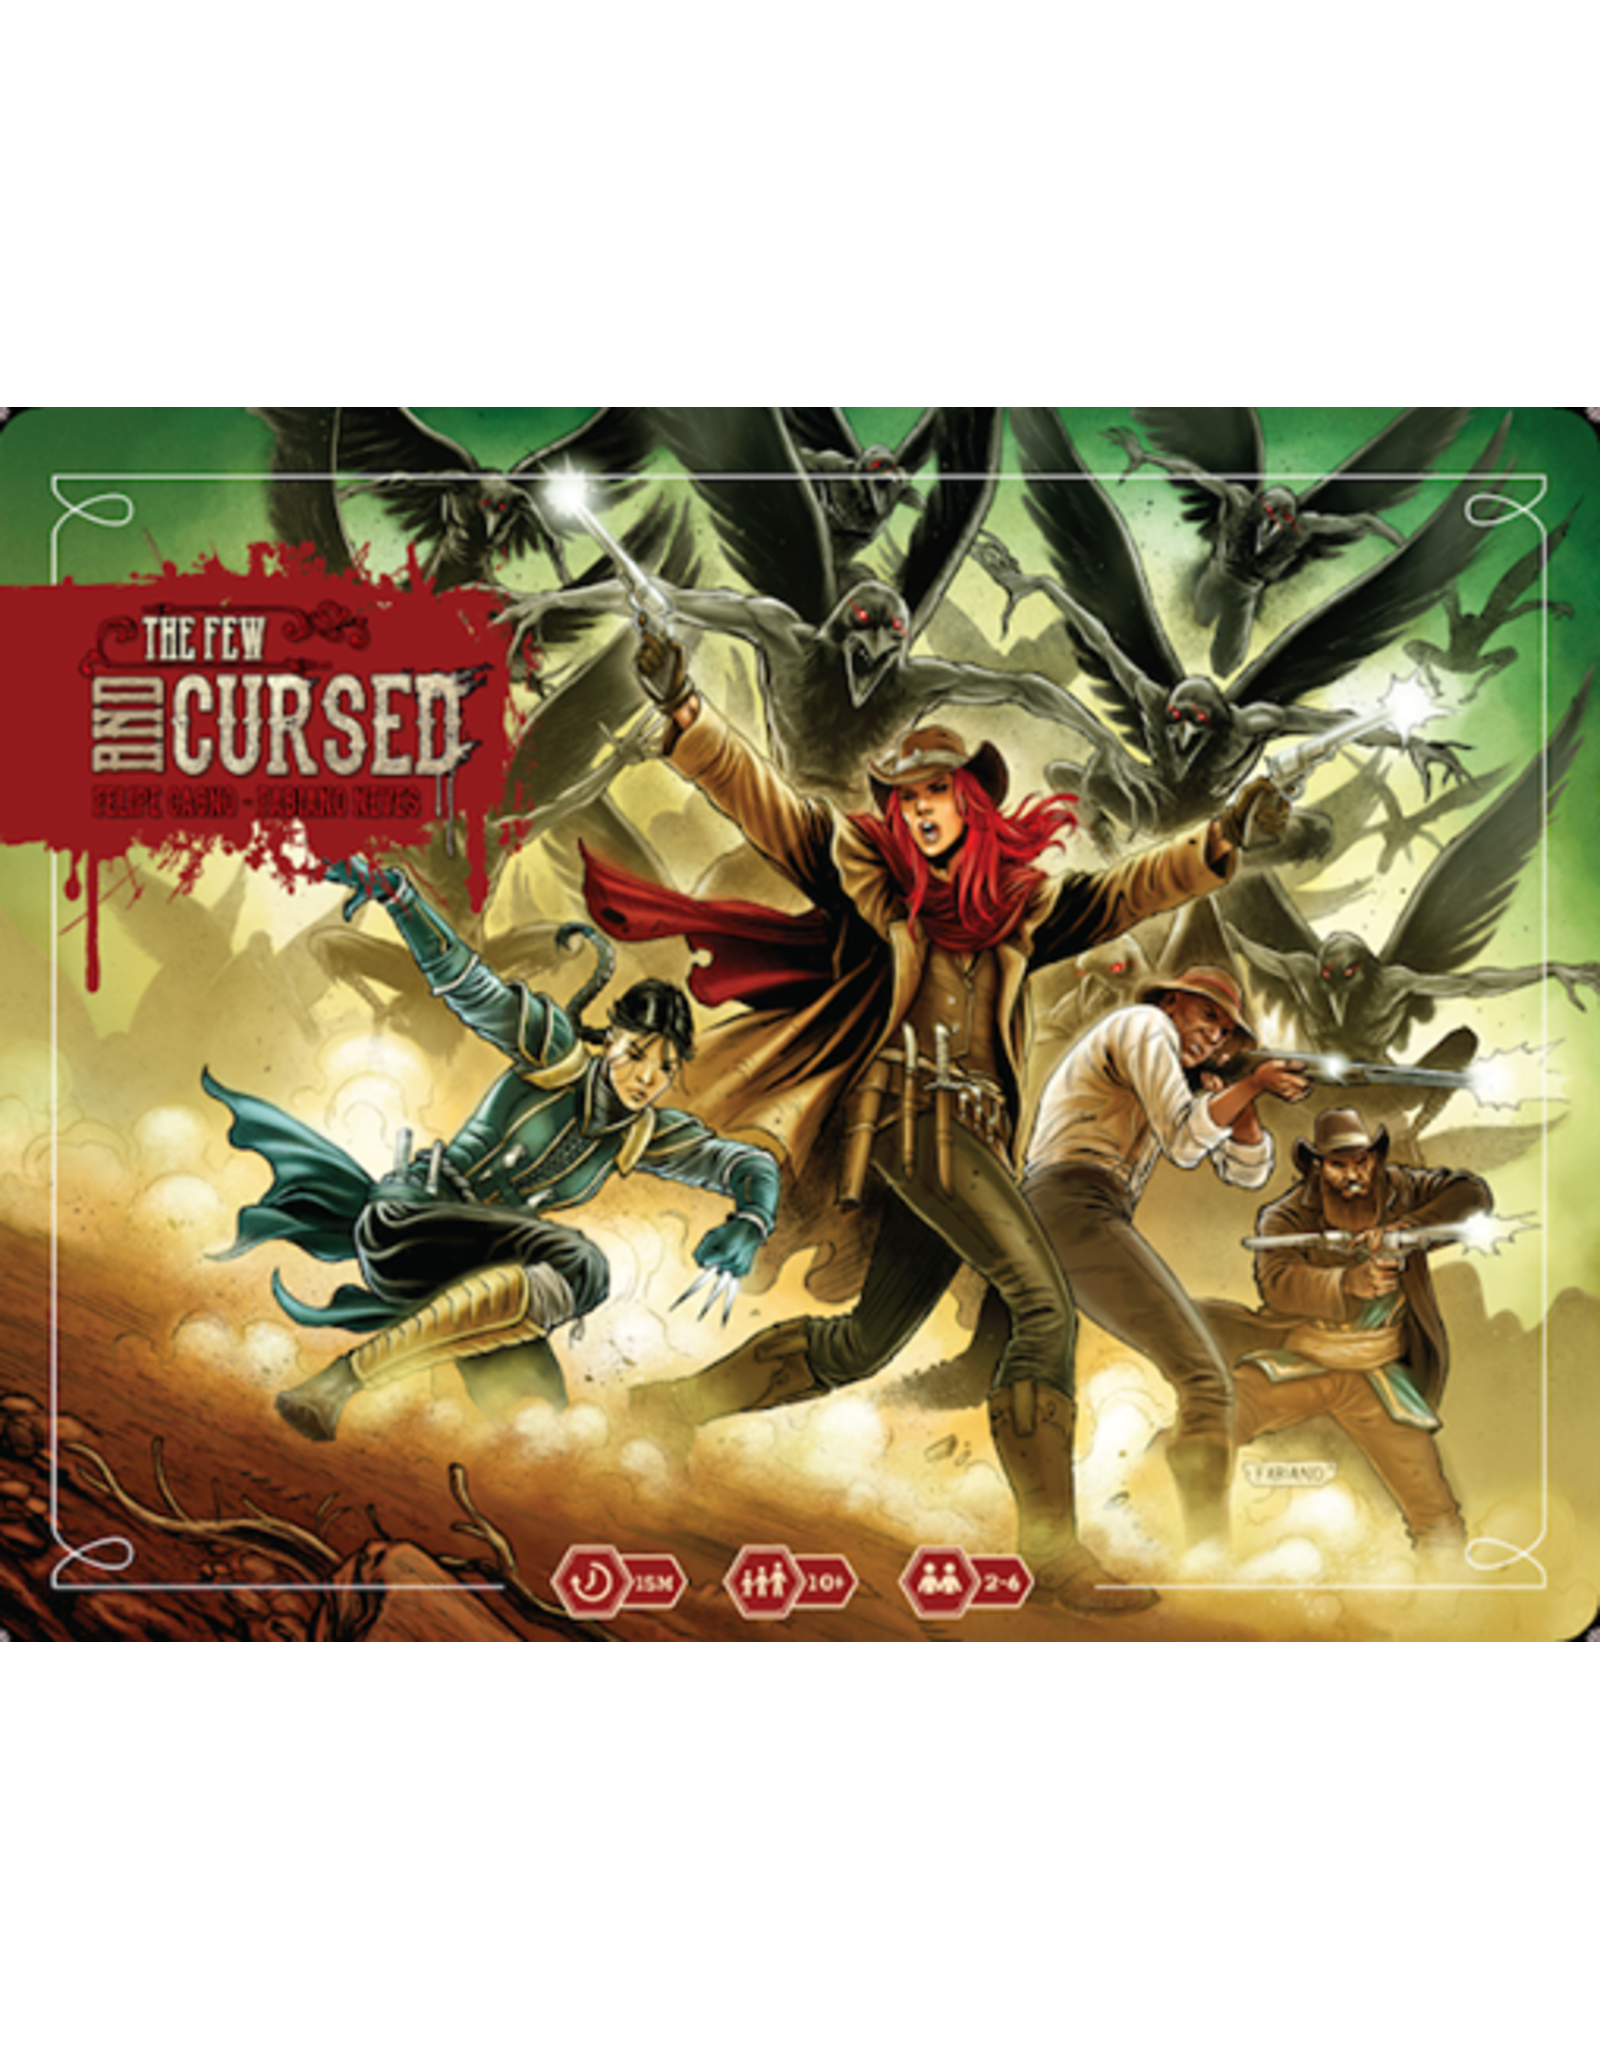 Rock Manor Games The Few and Cursed